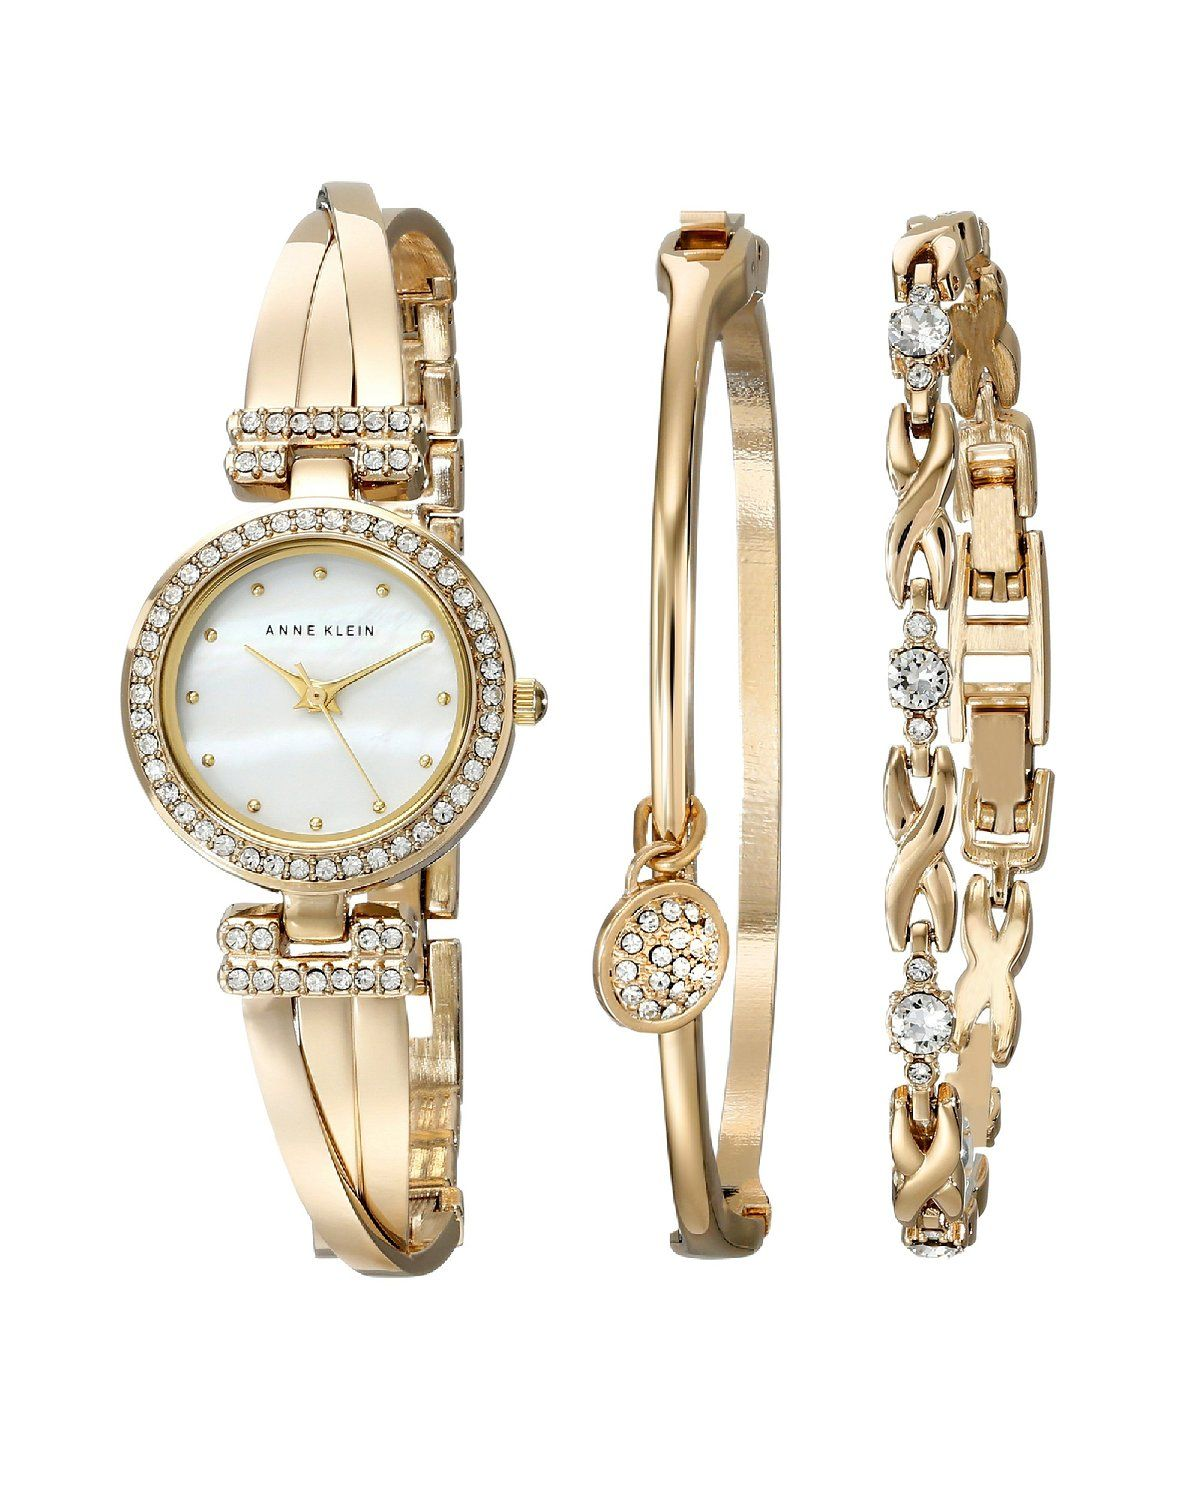 5a375f6a2ca Anne Klein Women's AK/1868GBST Swarovski Crystal-Accented Gold-Tone Bangle  Watch and Bracelet Set >>> Click image for more details.